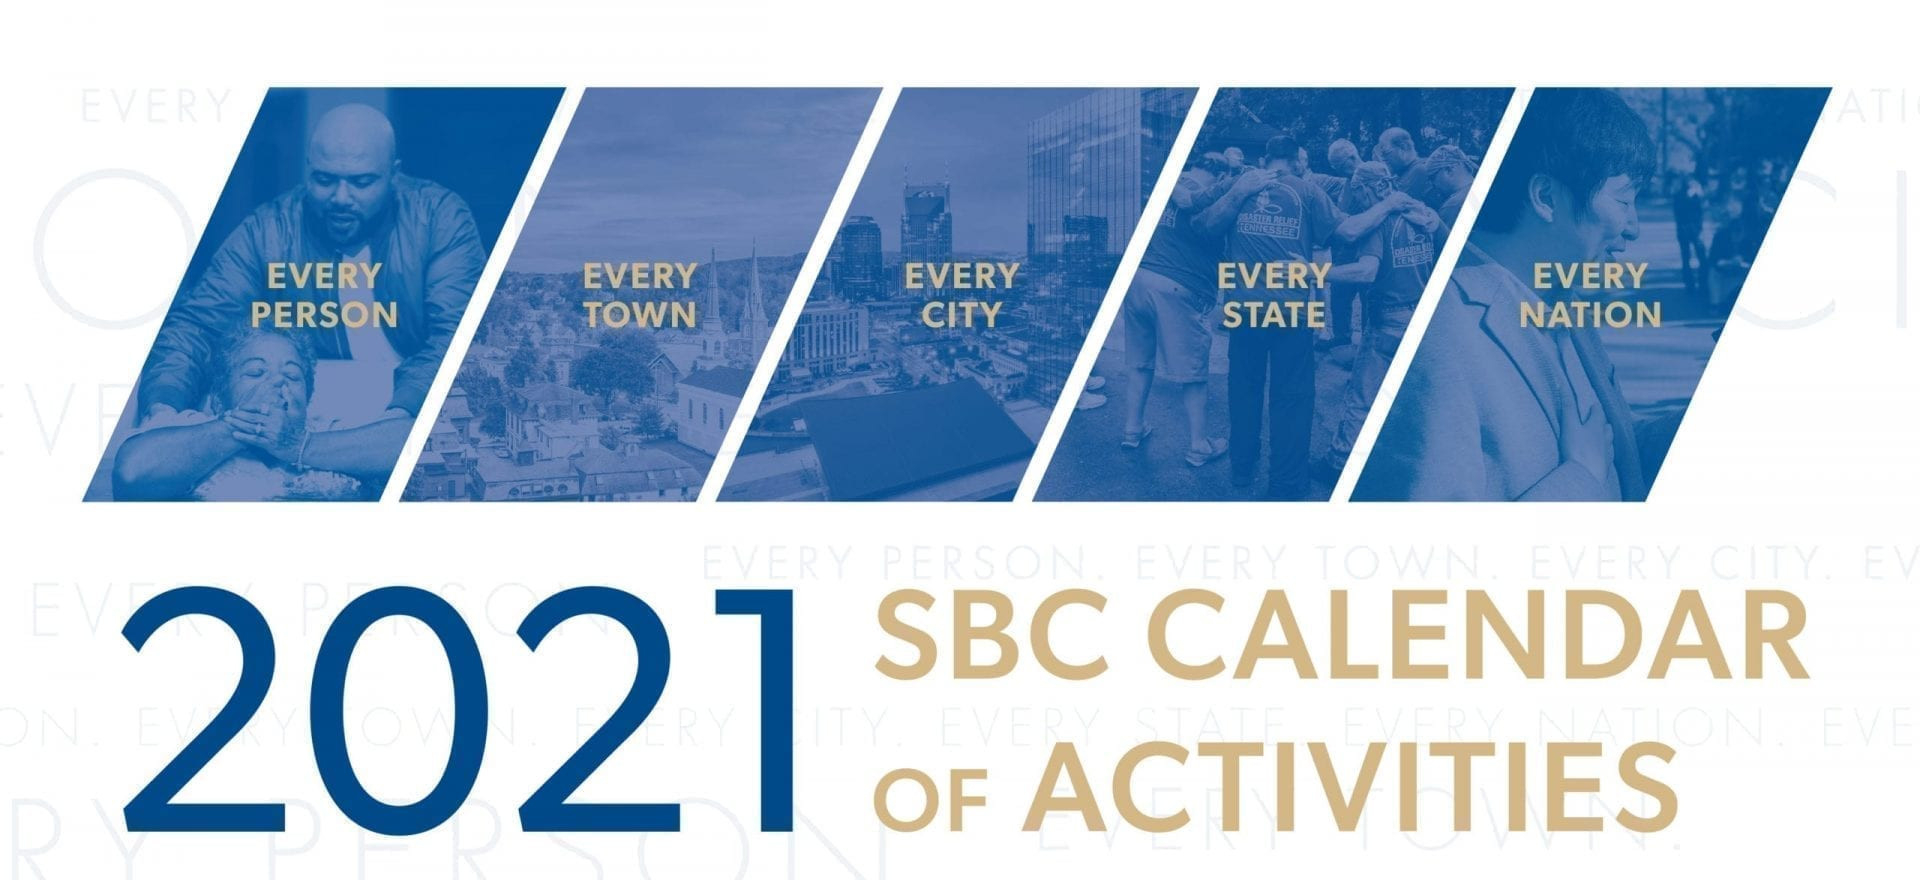 Addition Of George Liele Day Highlights 2021 Sbc Calendar-Day To Day Calendar 2021